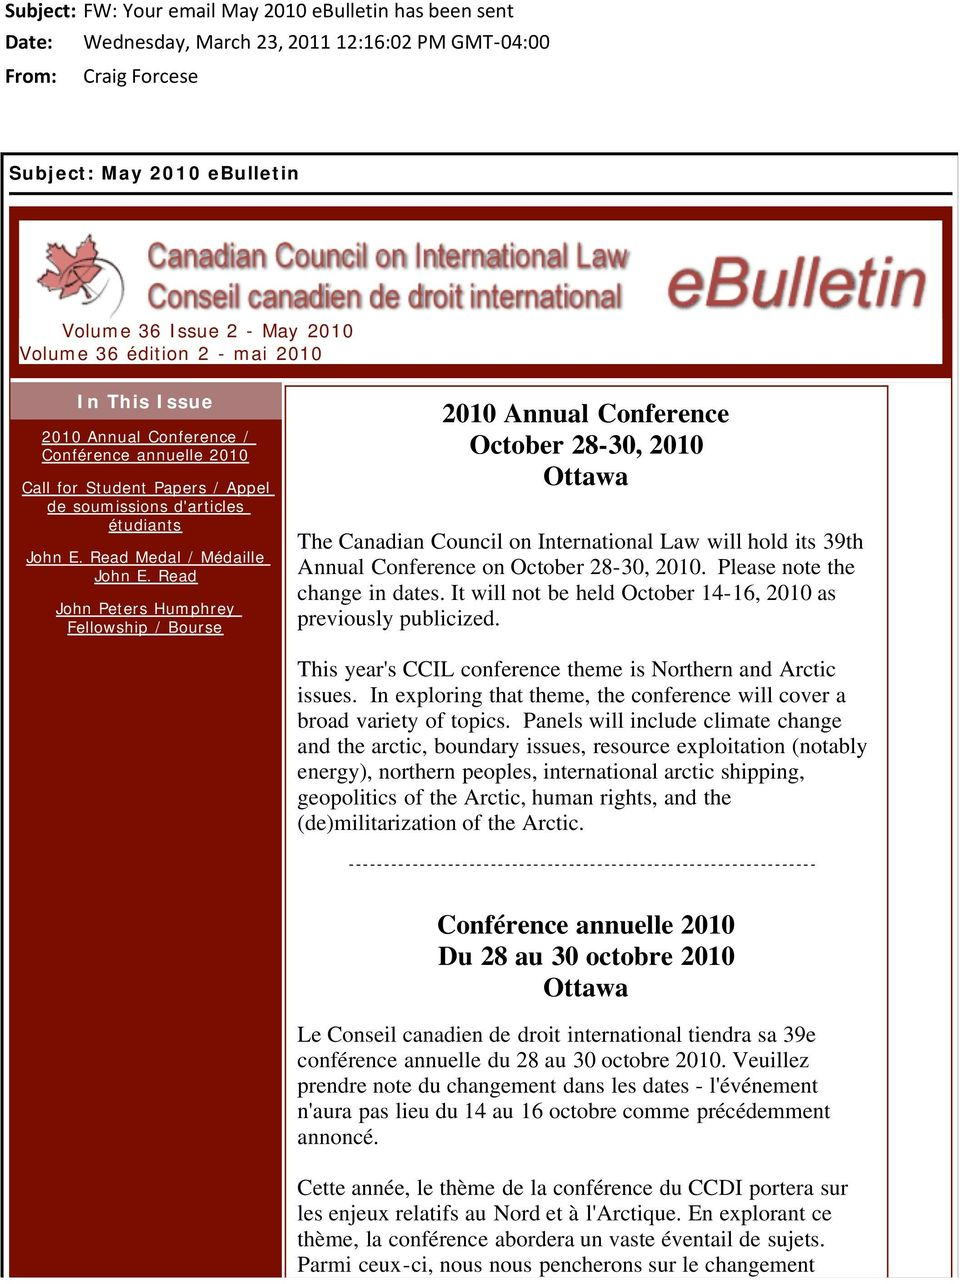 Read John Peters Humphrey Fellowship / Bourse 2010 Annual Conference October 28-30, 2010 Ottawa The Canadian Council on International Law will hold its 39th Annual Conference on October 28-30, 2010.